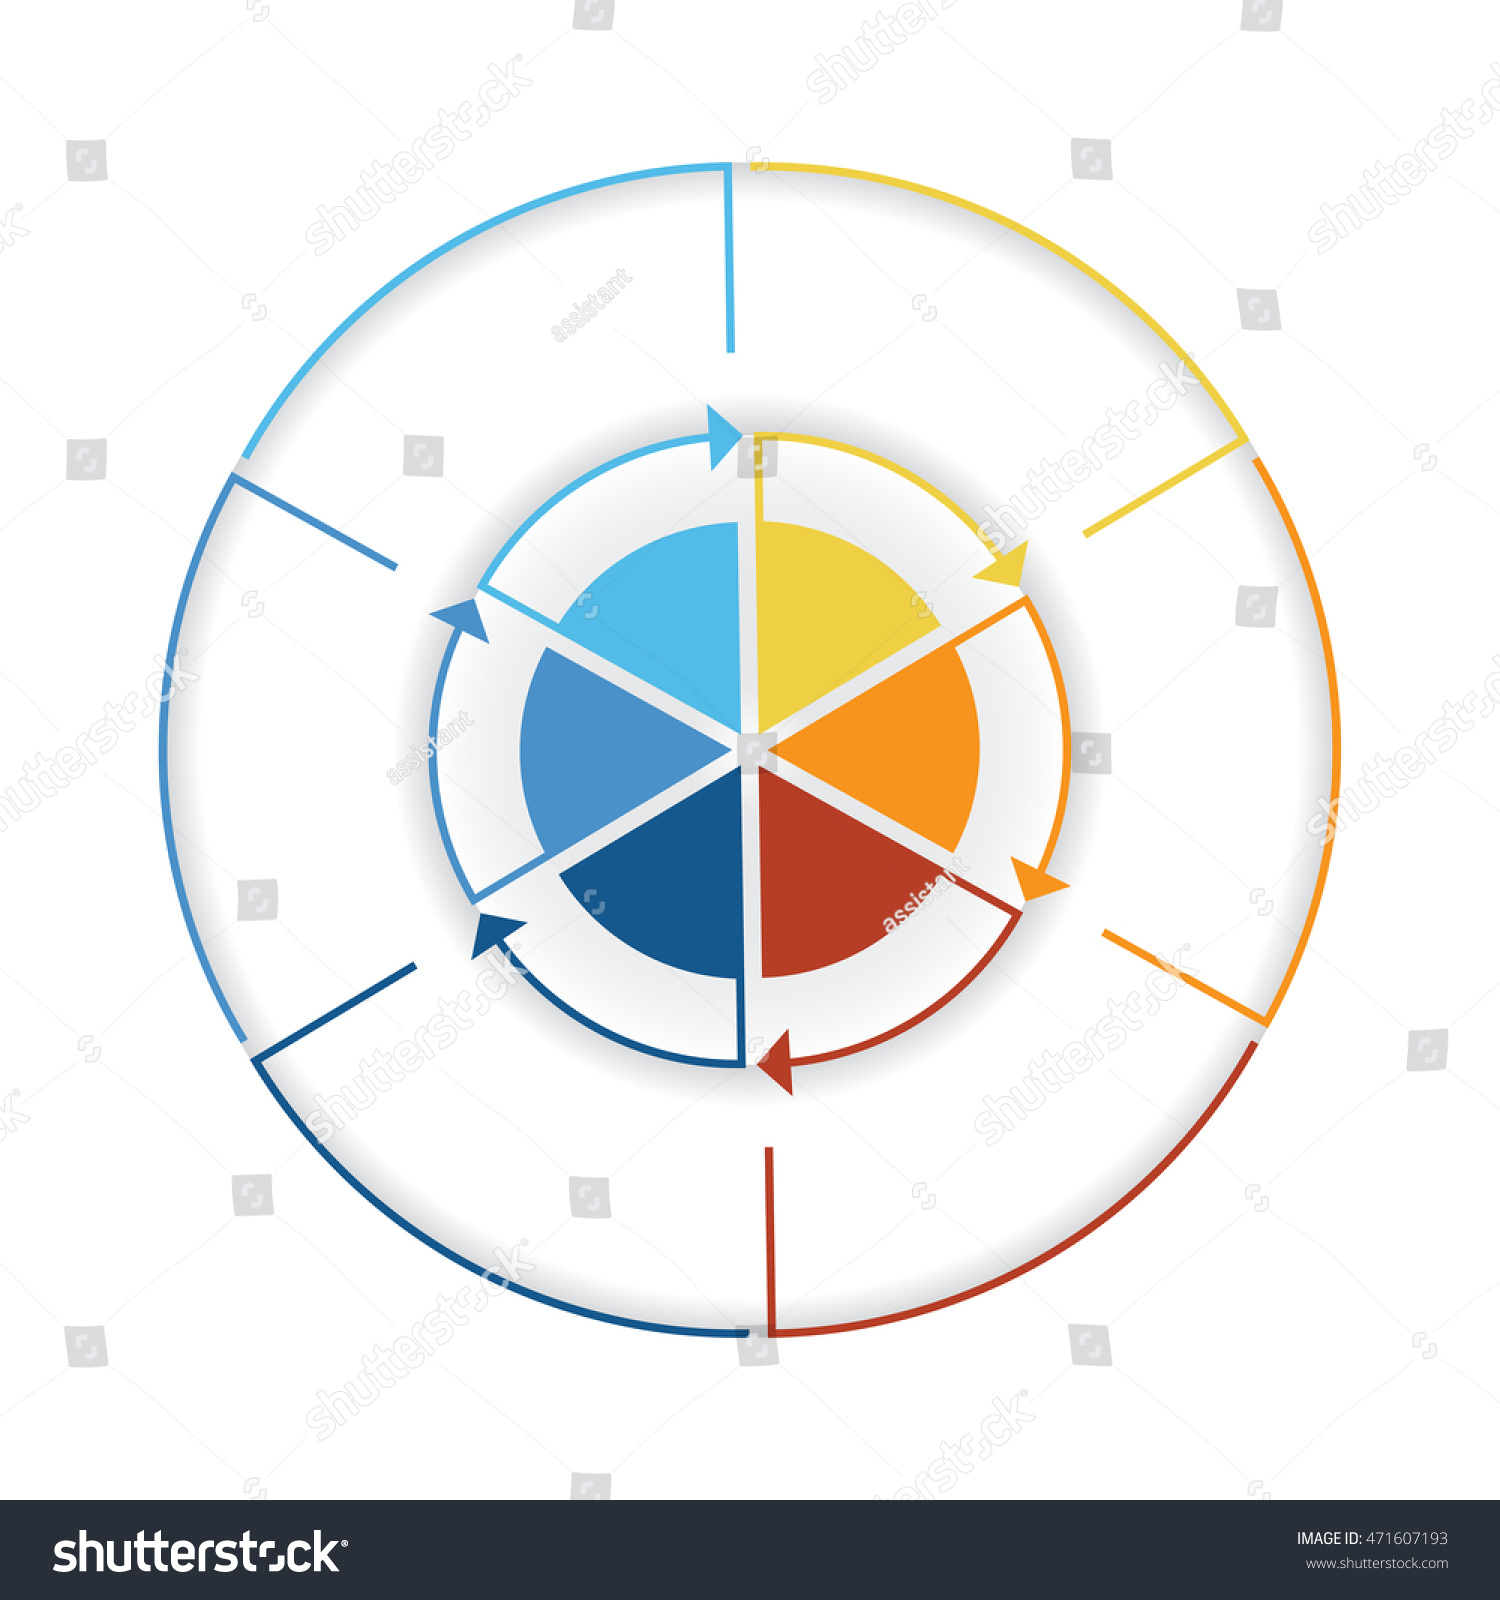 Arrows colourful lines around circle template stock illustration arrows from colourful lines around circle template infographic six position pie chart nvjuhfo Choice Image